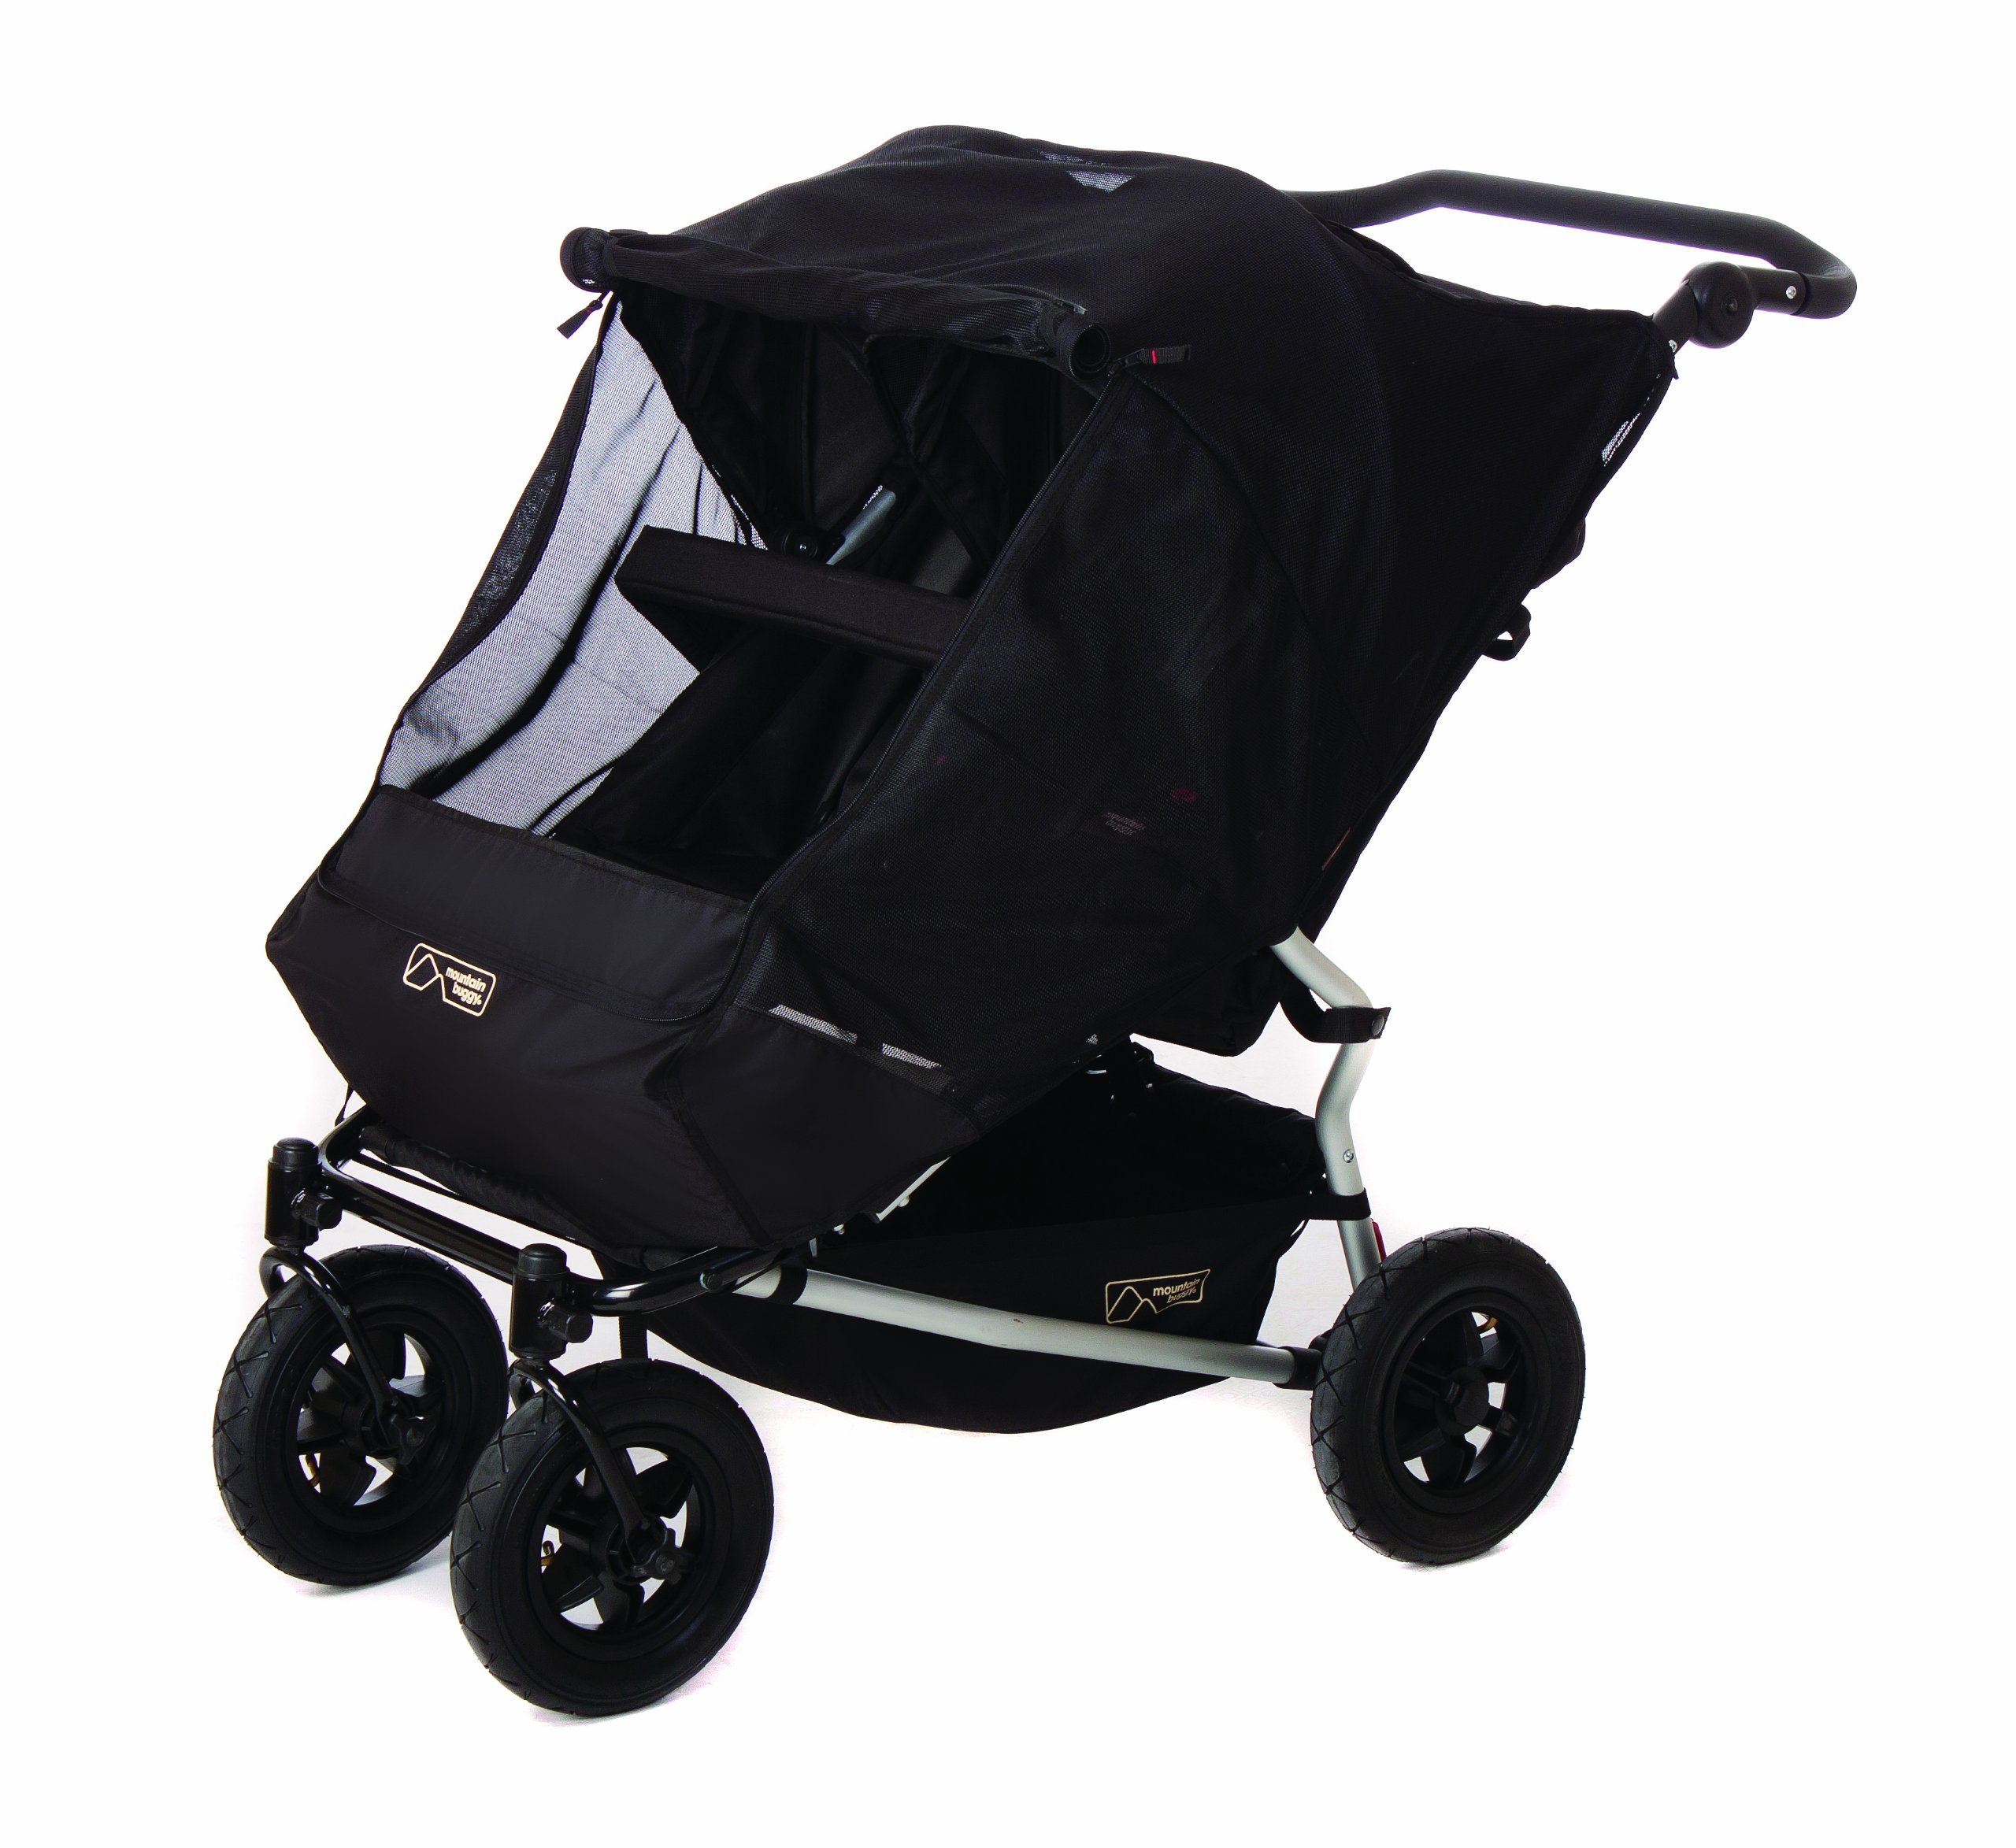 Mountain Buggy Duet 2016 Double Stroller, Black by Mountain Buggy (Image #14)